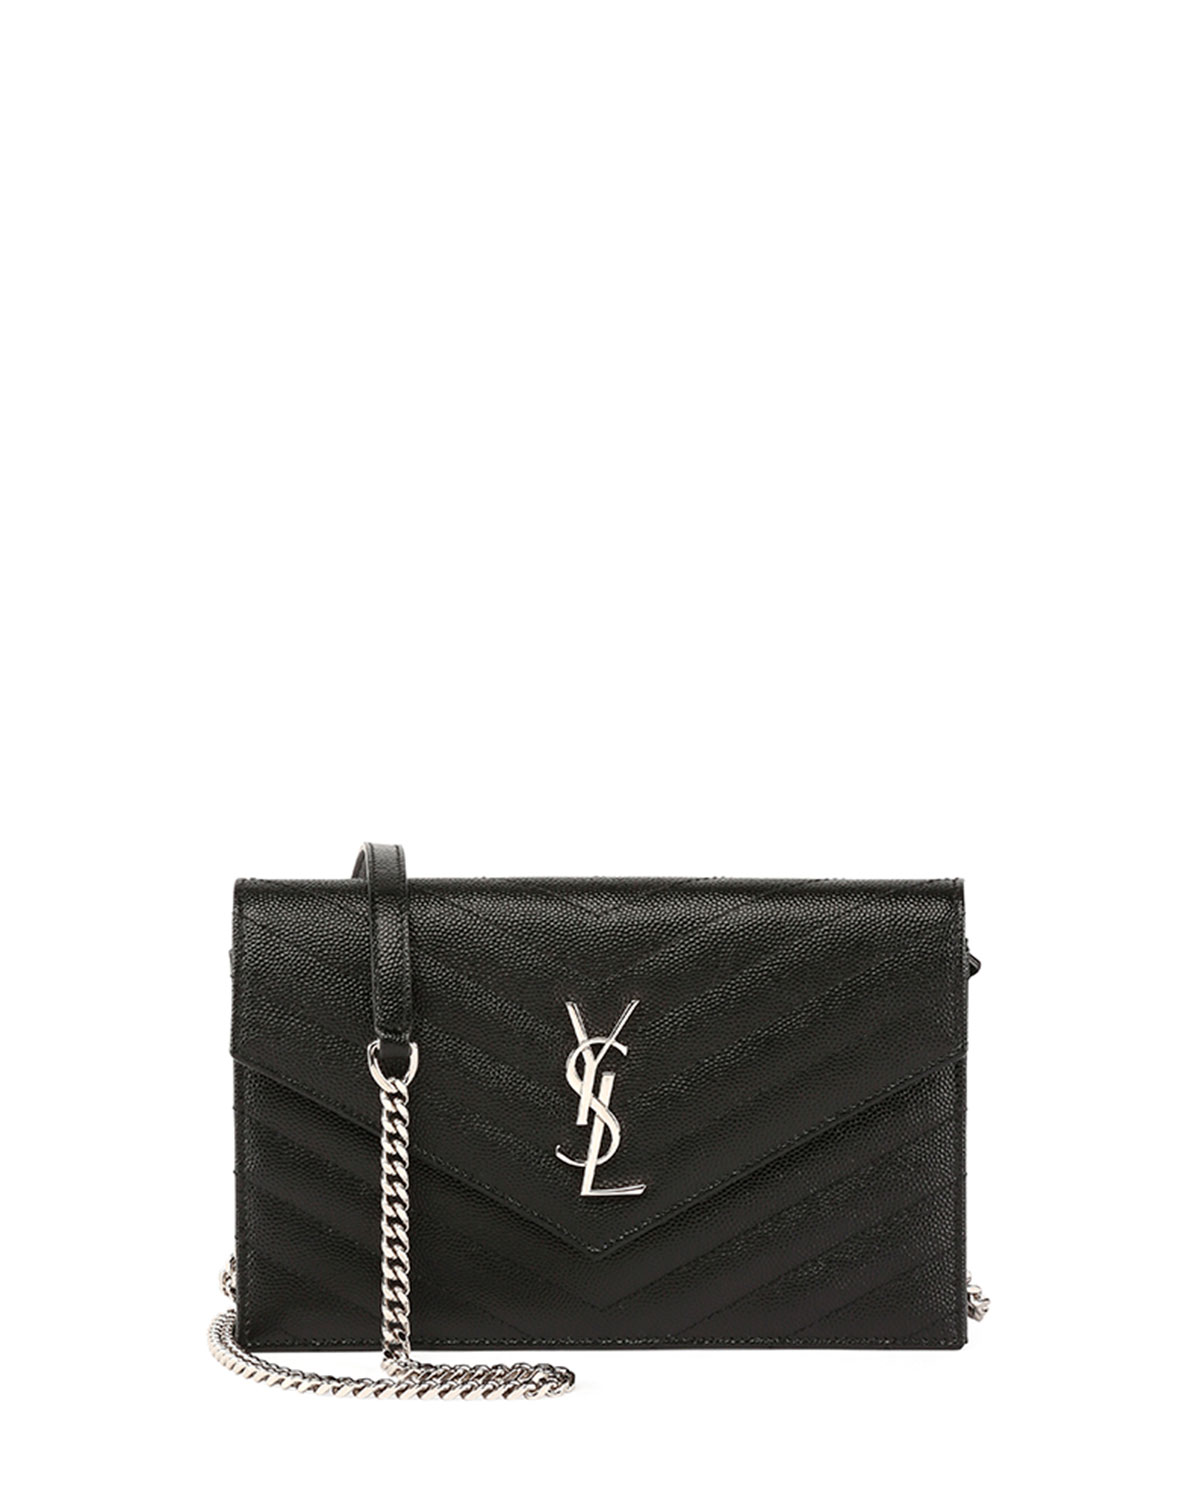 c69a79545cec3 Saint Laurent Monogram YSL Wallet on a Chain